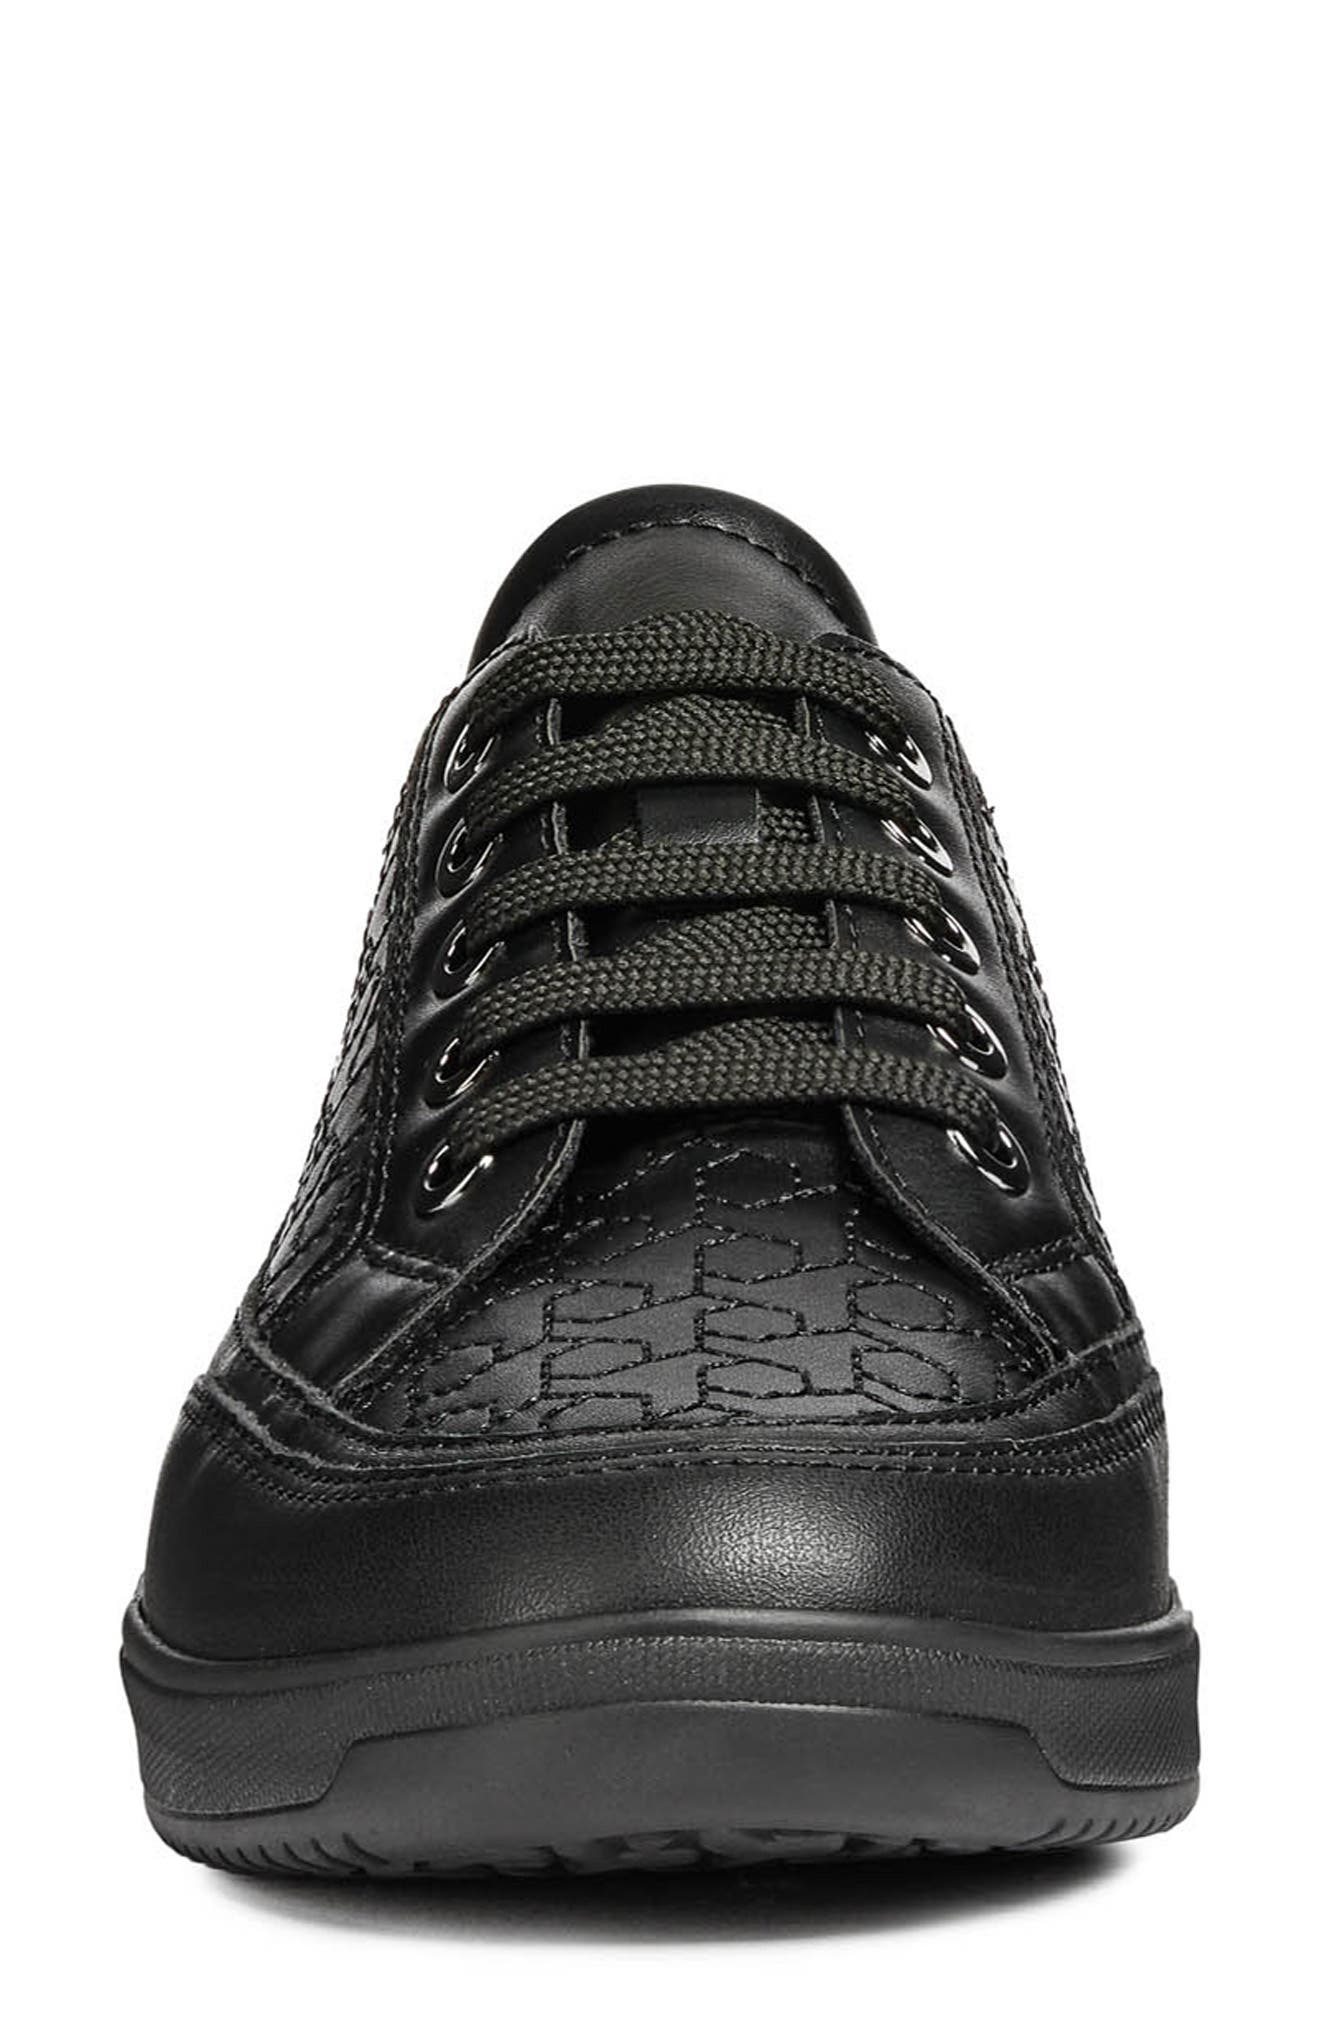 Tahina Sneaker,                             Alternate thumbnail 4, color,                             BLACK FAUX LEATHER